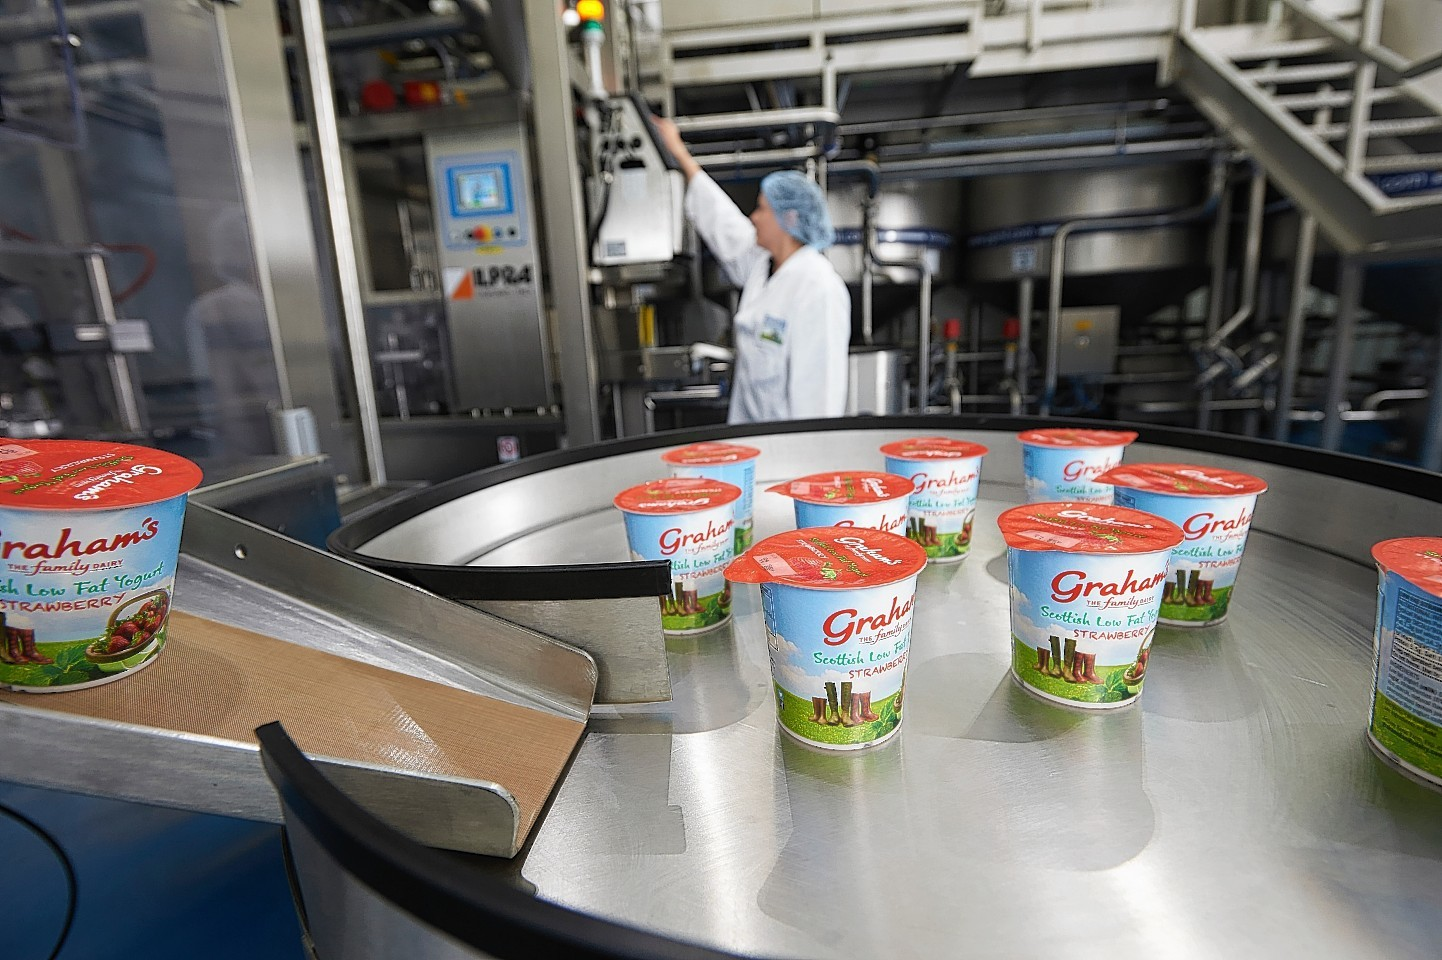 Yogurt being produced at the Nairn site